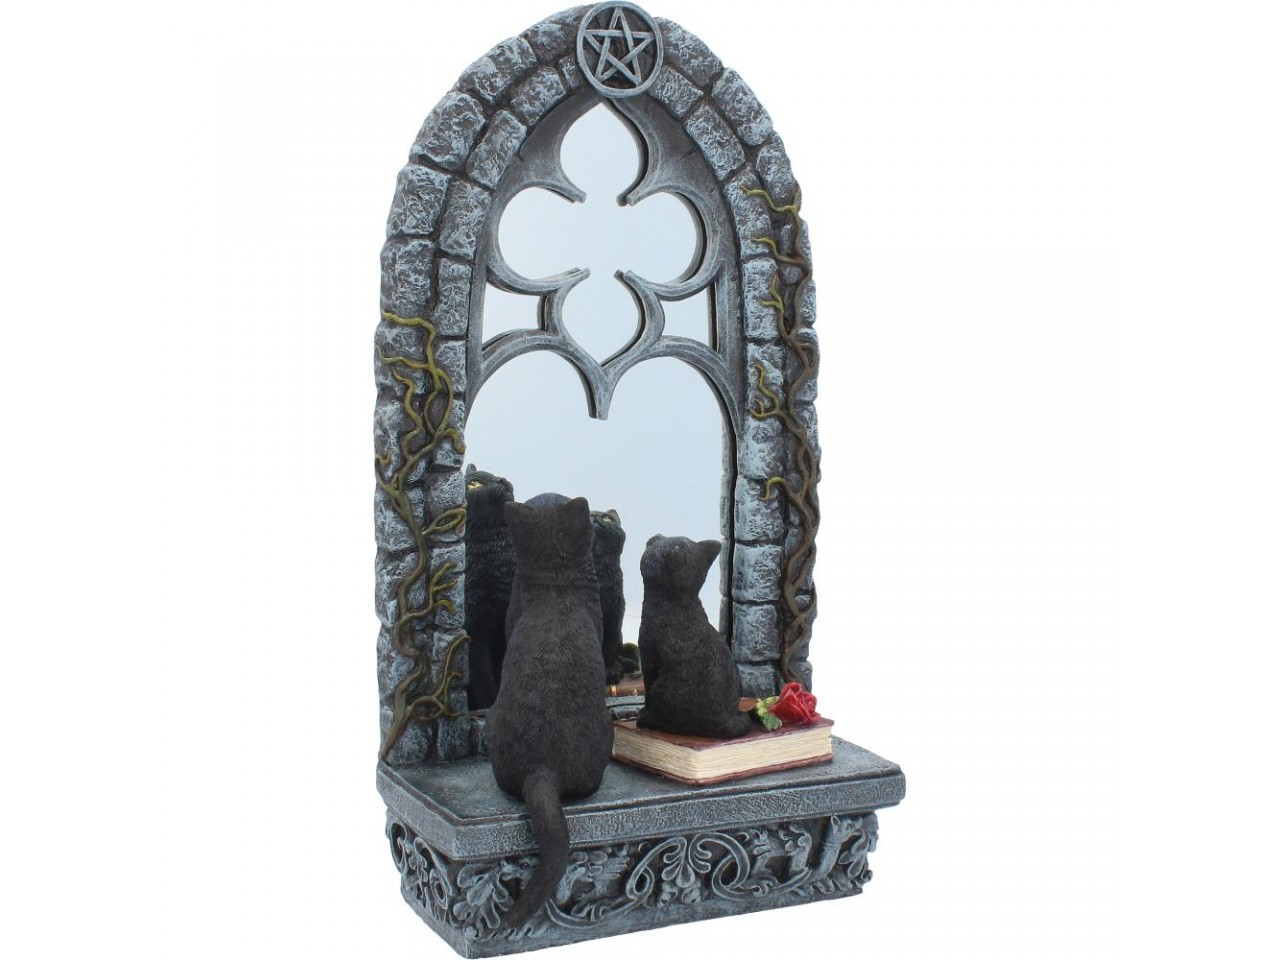 Creature della Foresta - Gatto Familar Reflection - Resina  -Dipinto a mano